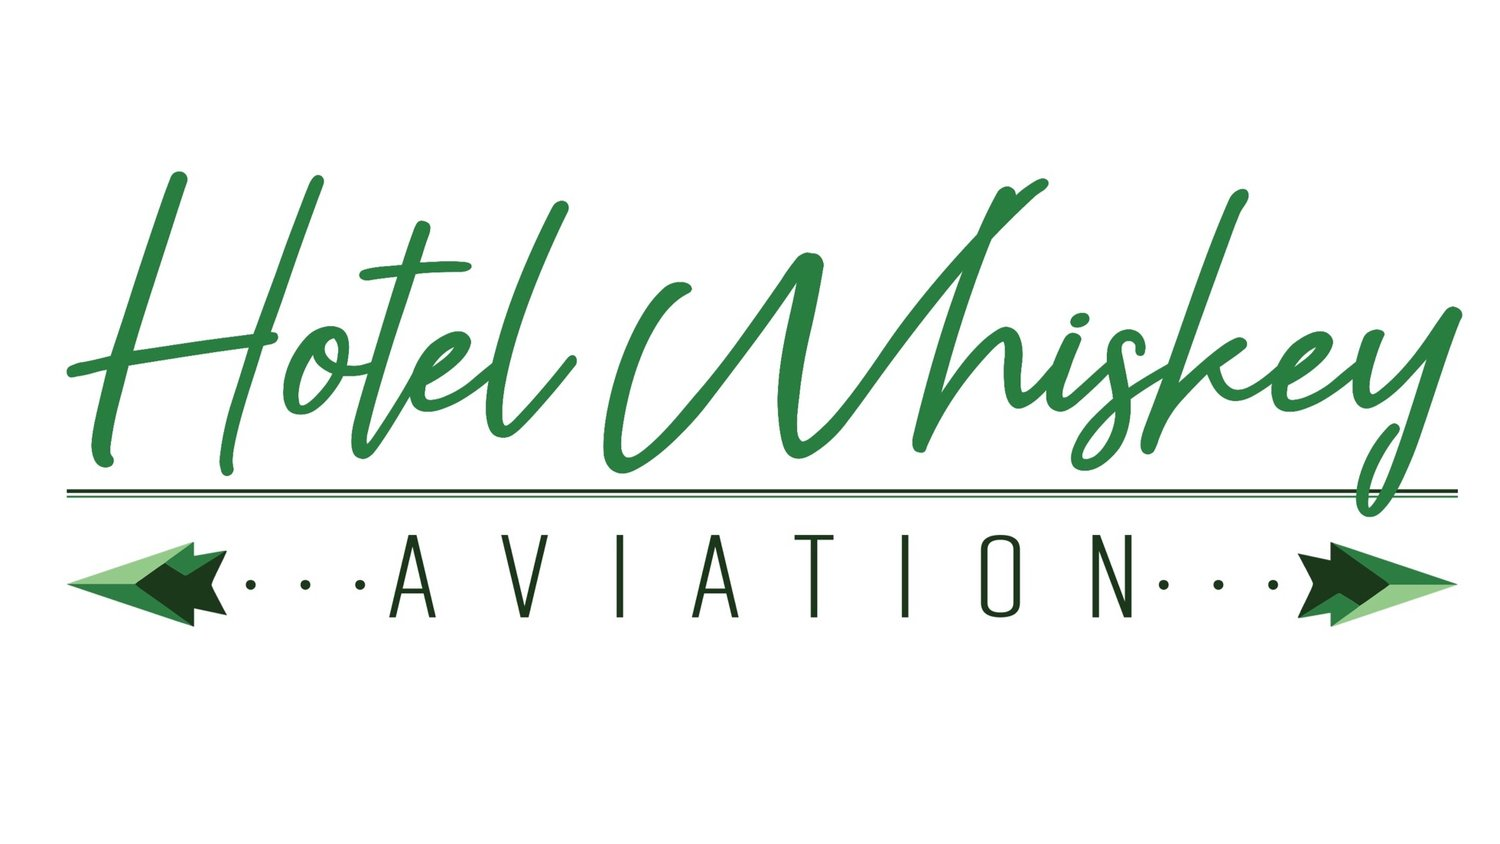 Hotel Whiskey Aviation